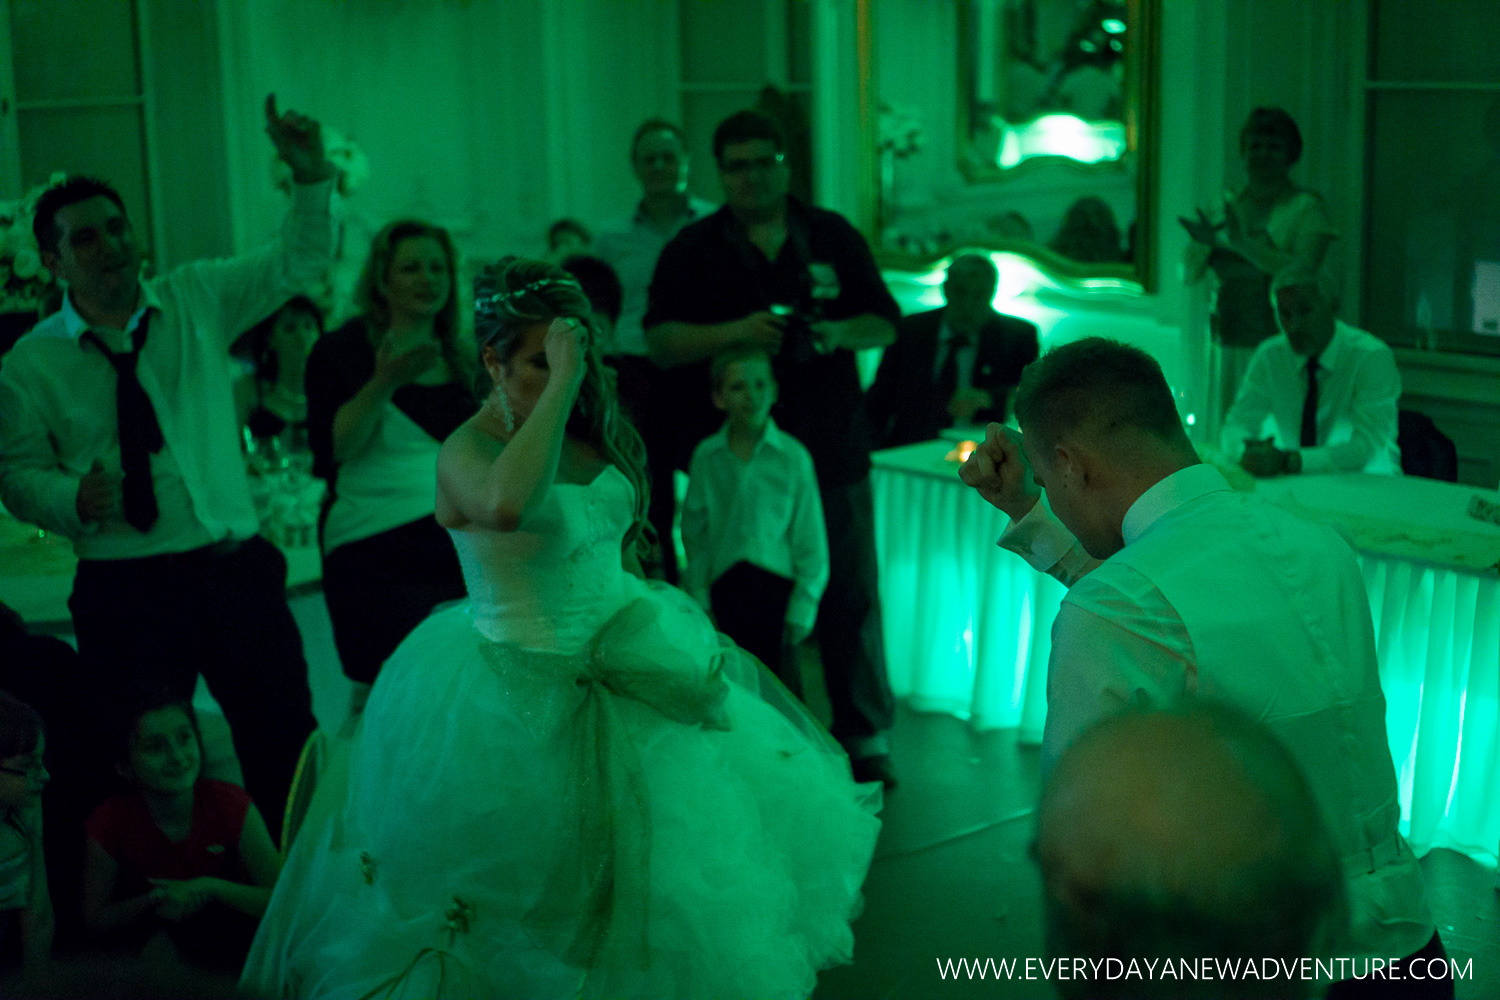 [SqSp1500-058] Budapest - Inez and Arni's Wedding!-471.jpg